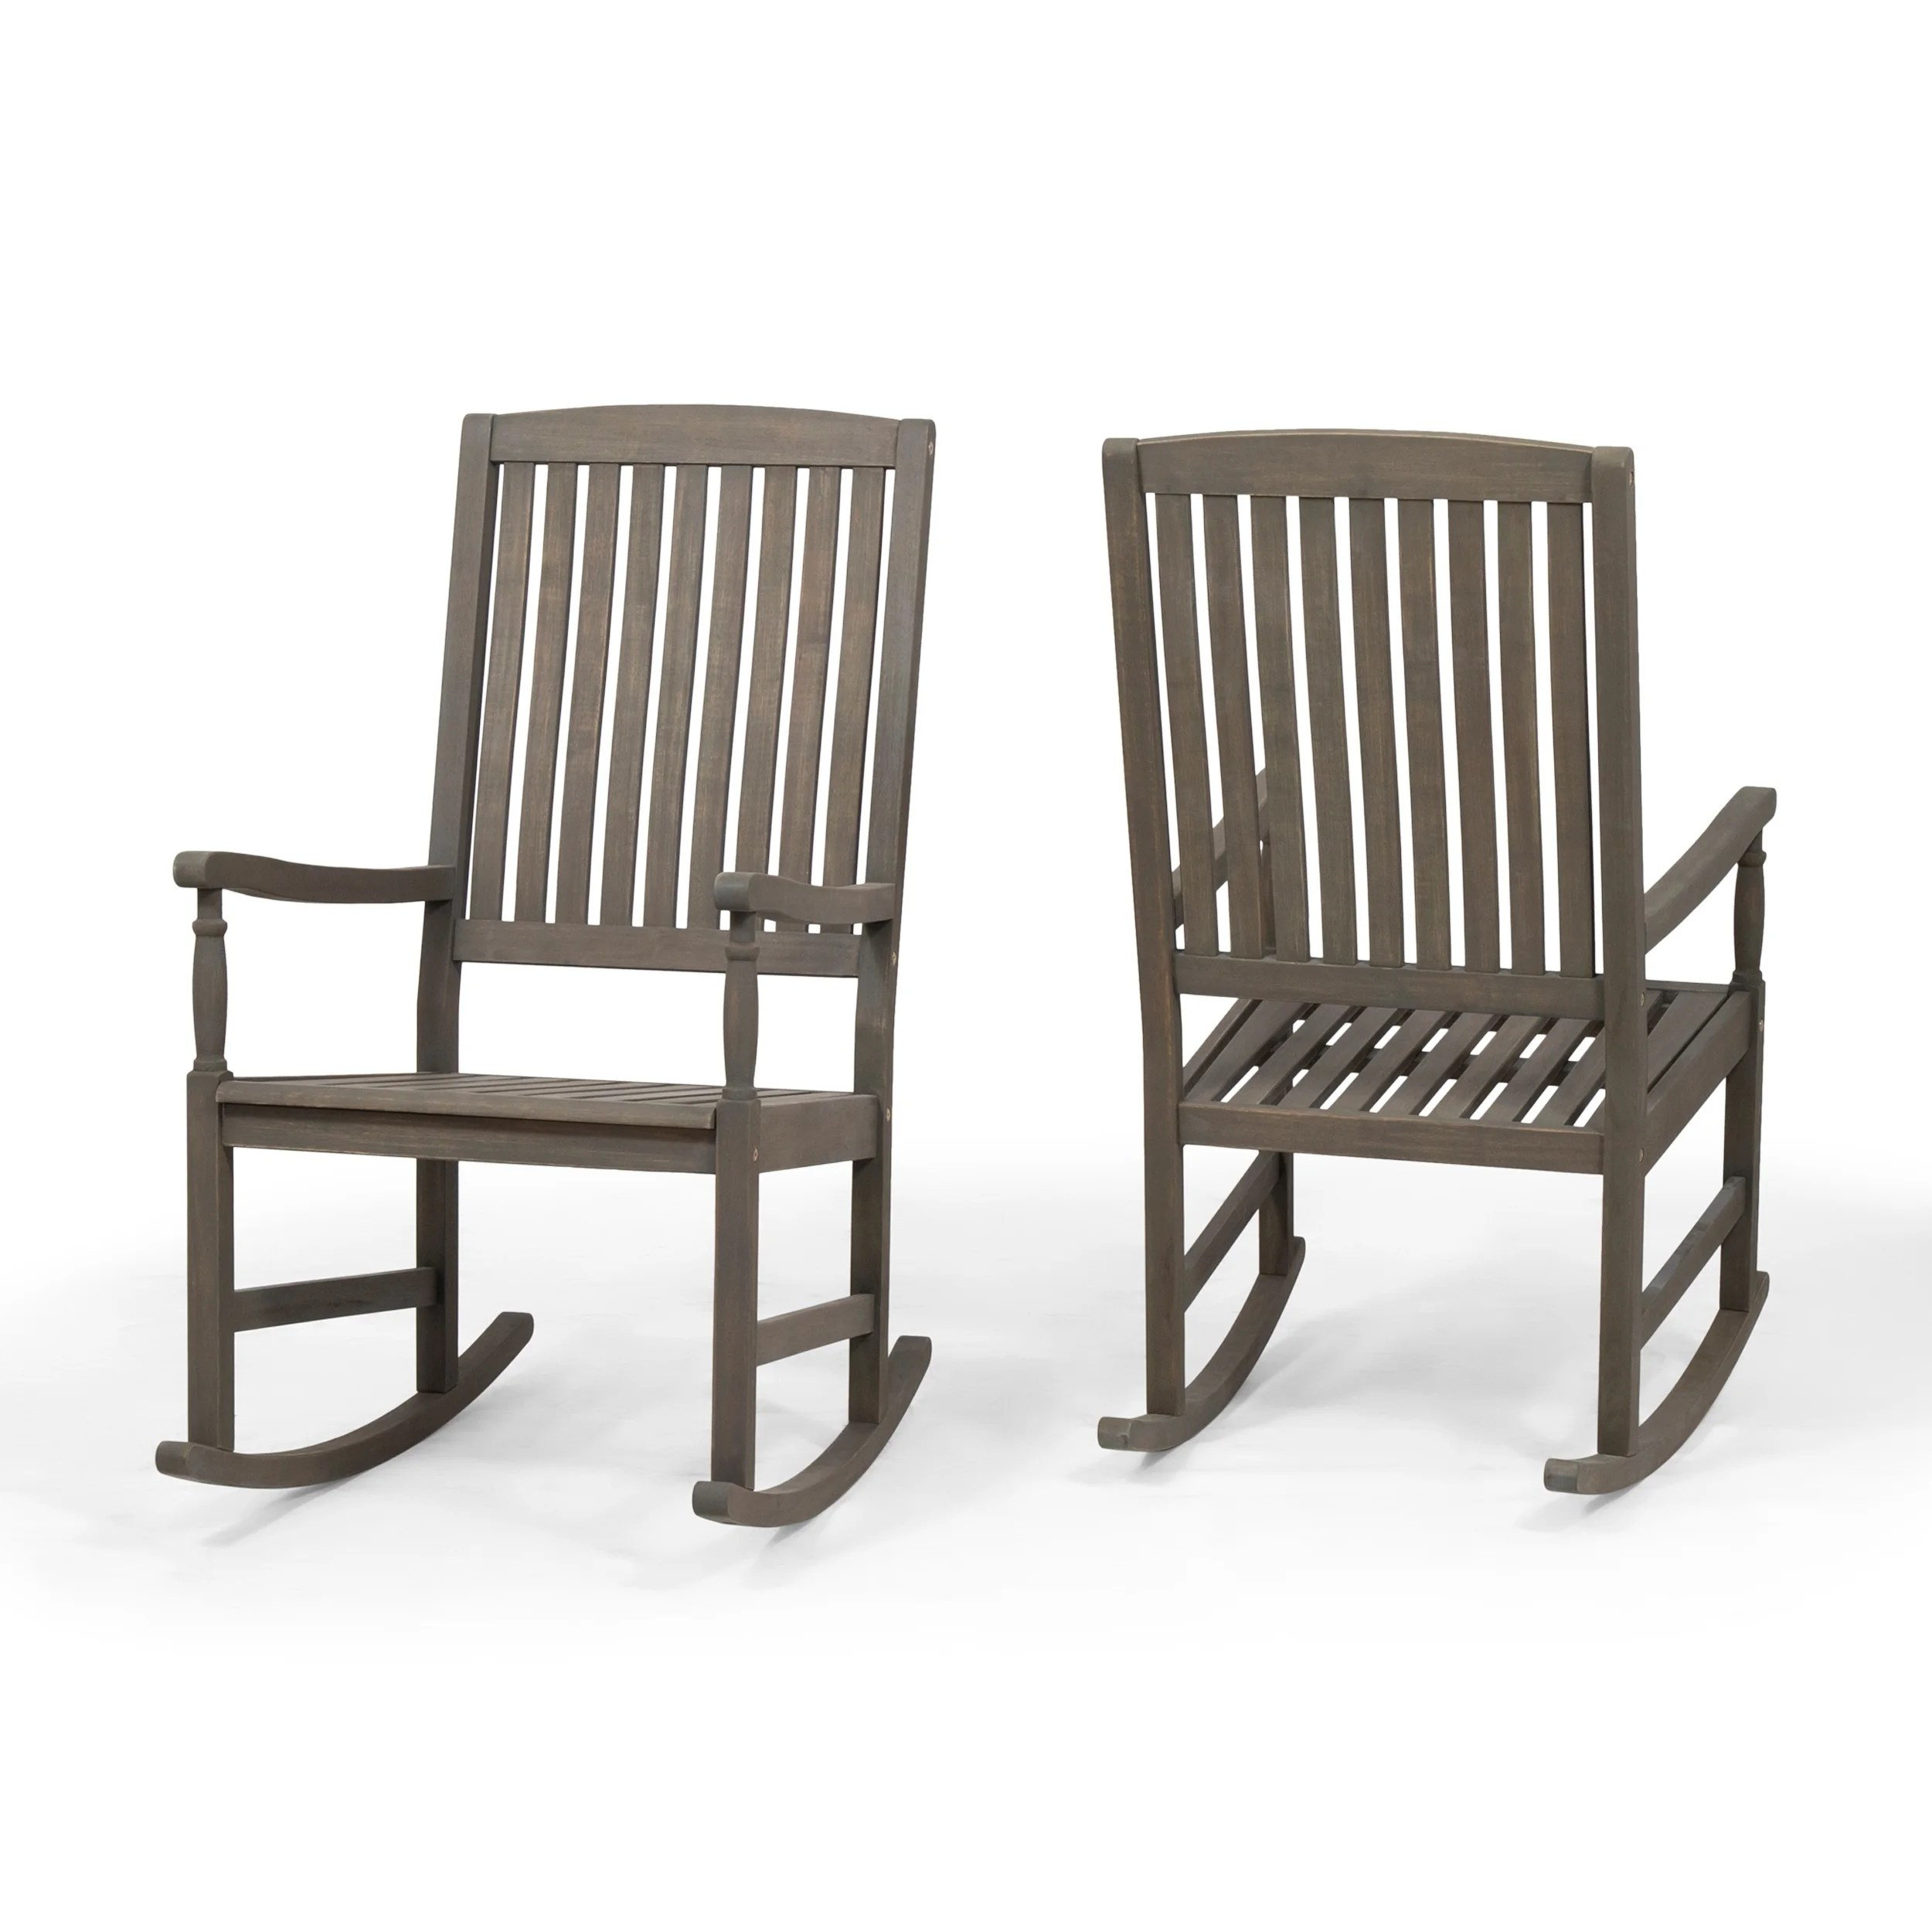 Outdoor Rocking Chair Set Arcadia Outdoor Acacia Wood Rocking Chairs Set Of 2 By Christopher Knight Home